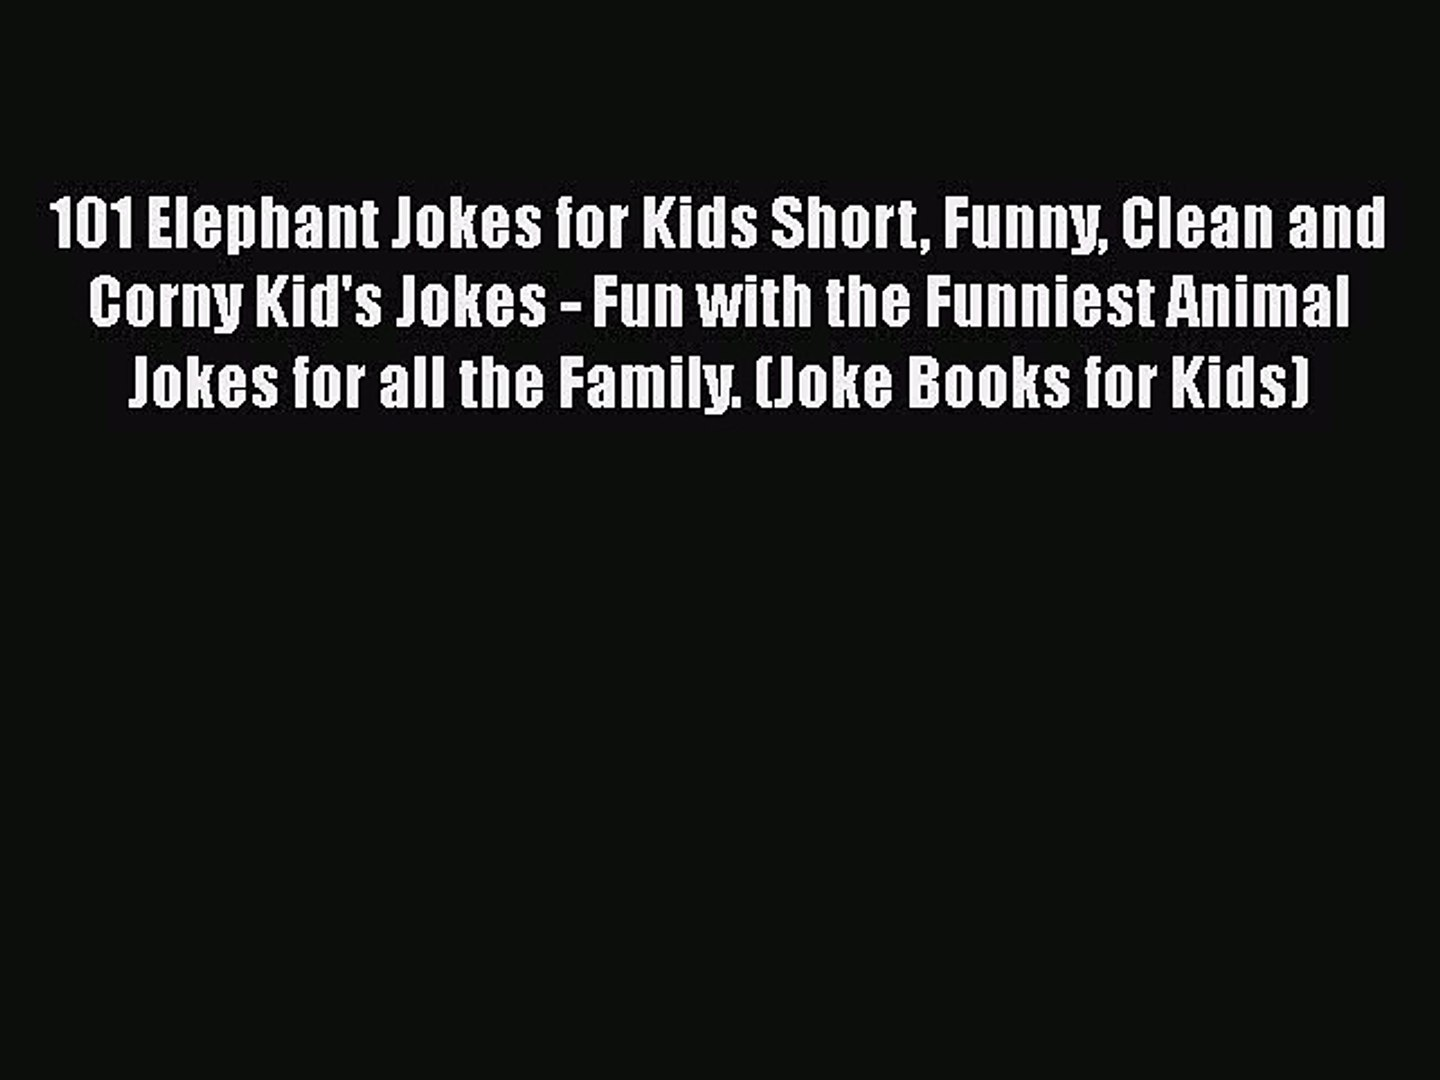 Download 101 Elephant Jokes for Kids Short Funny Clean and Corny Kid's Jokes - Fun with the